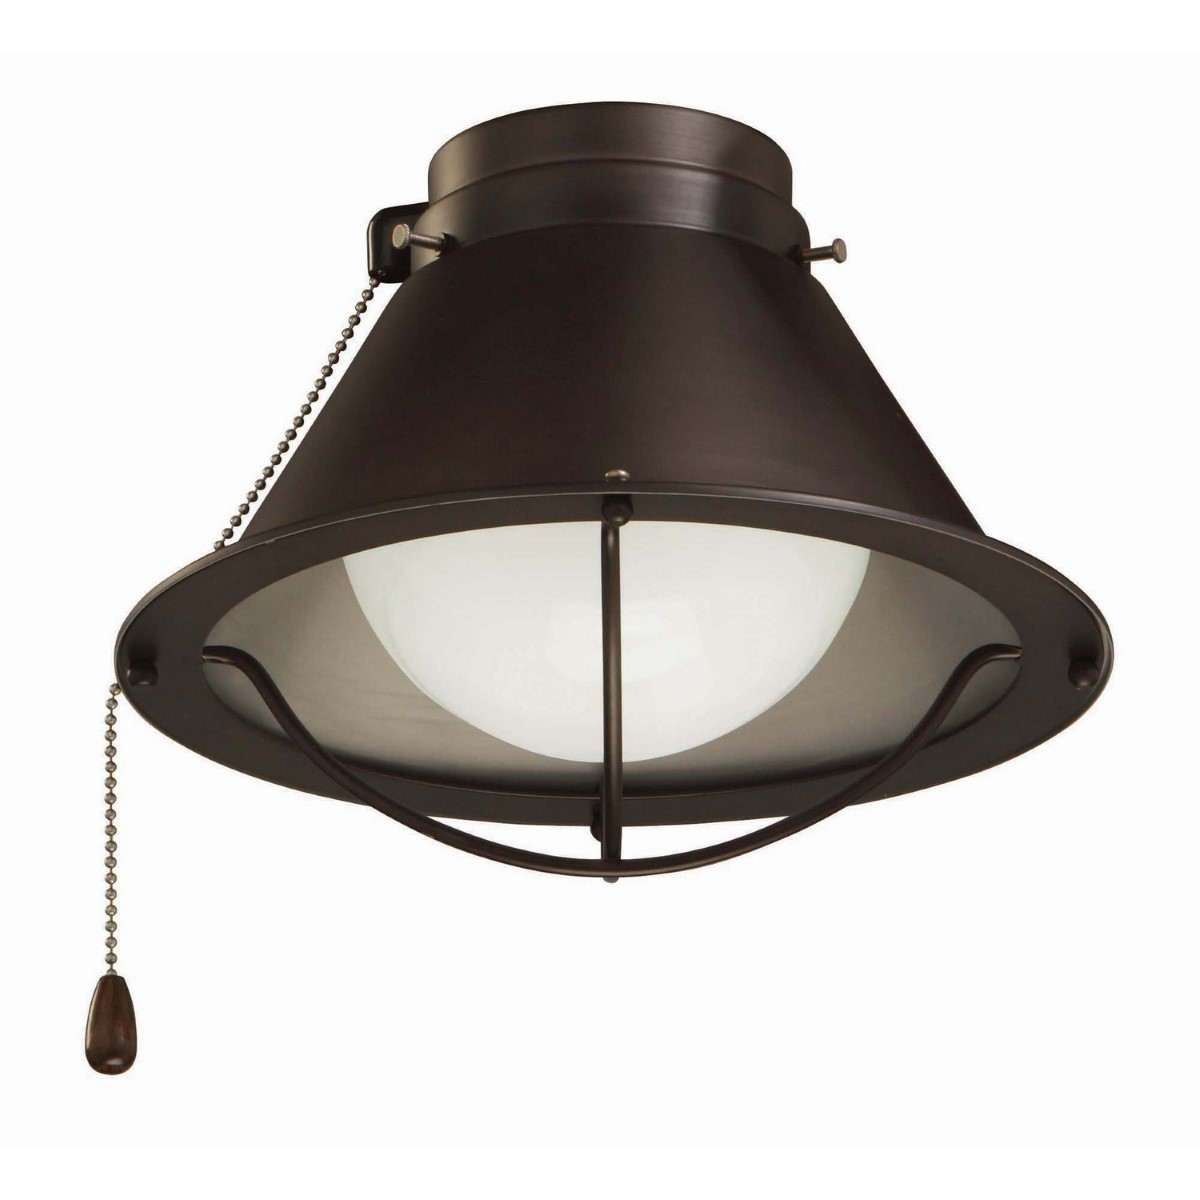 Emerson Seaside Outdoor Wet LED Light Kit with Opal Matte Shade - Oil-Rubbed Bronze (LK46ORB)